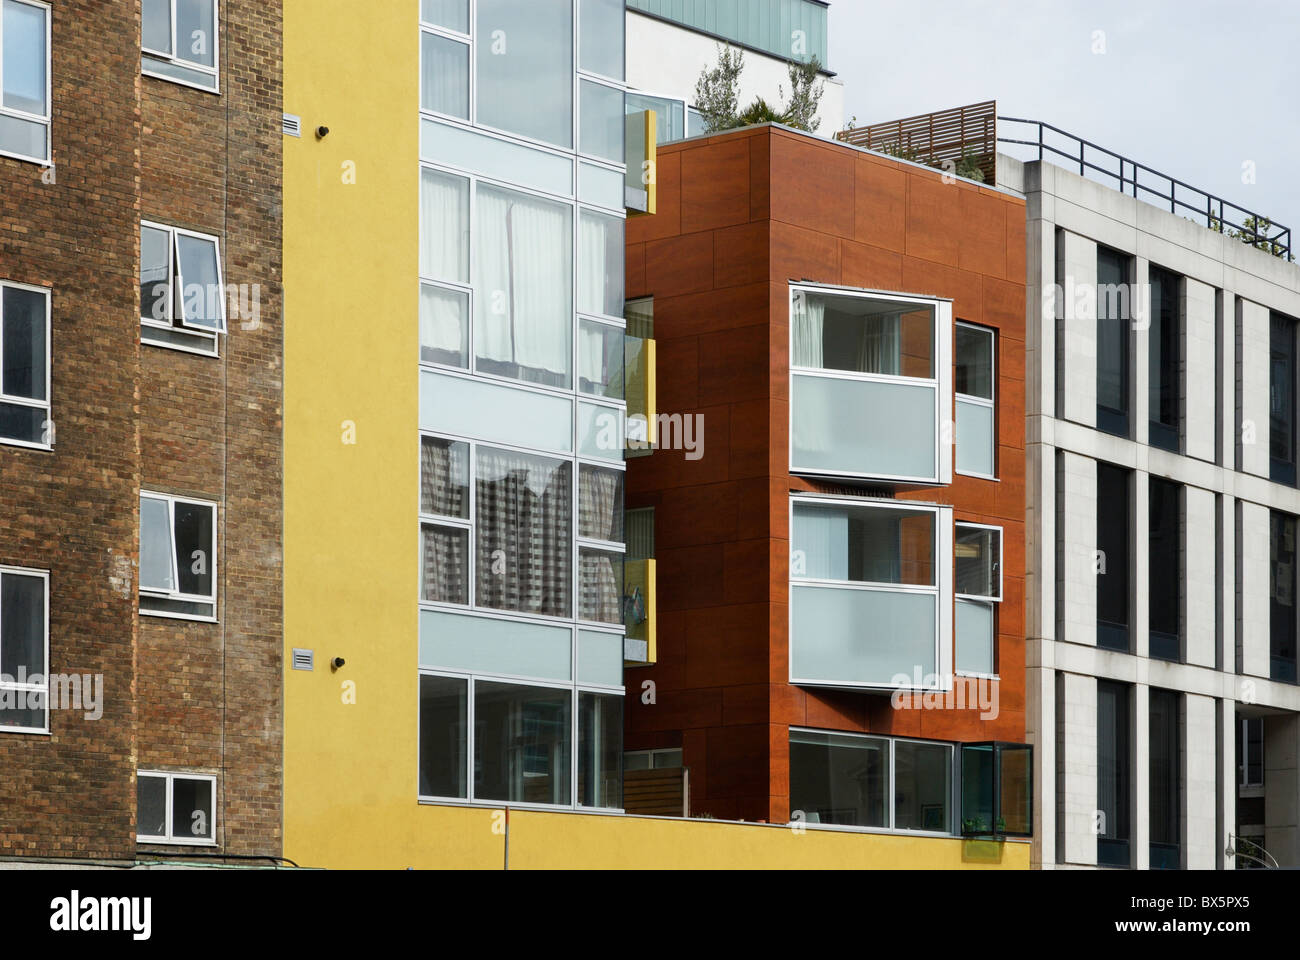 Modern apartments Clerkenwell Central London UK - Stock Image